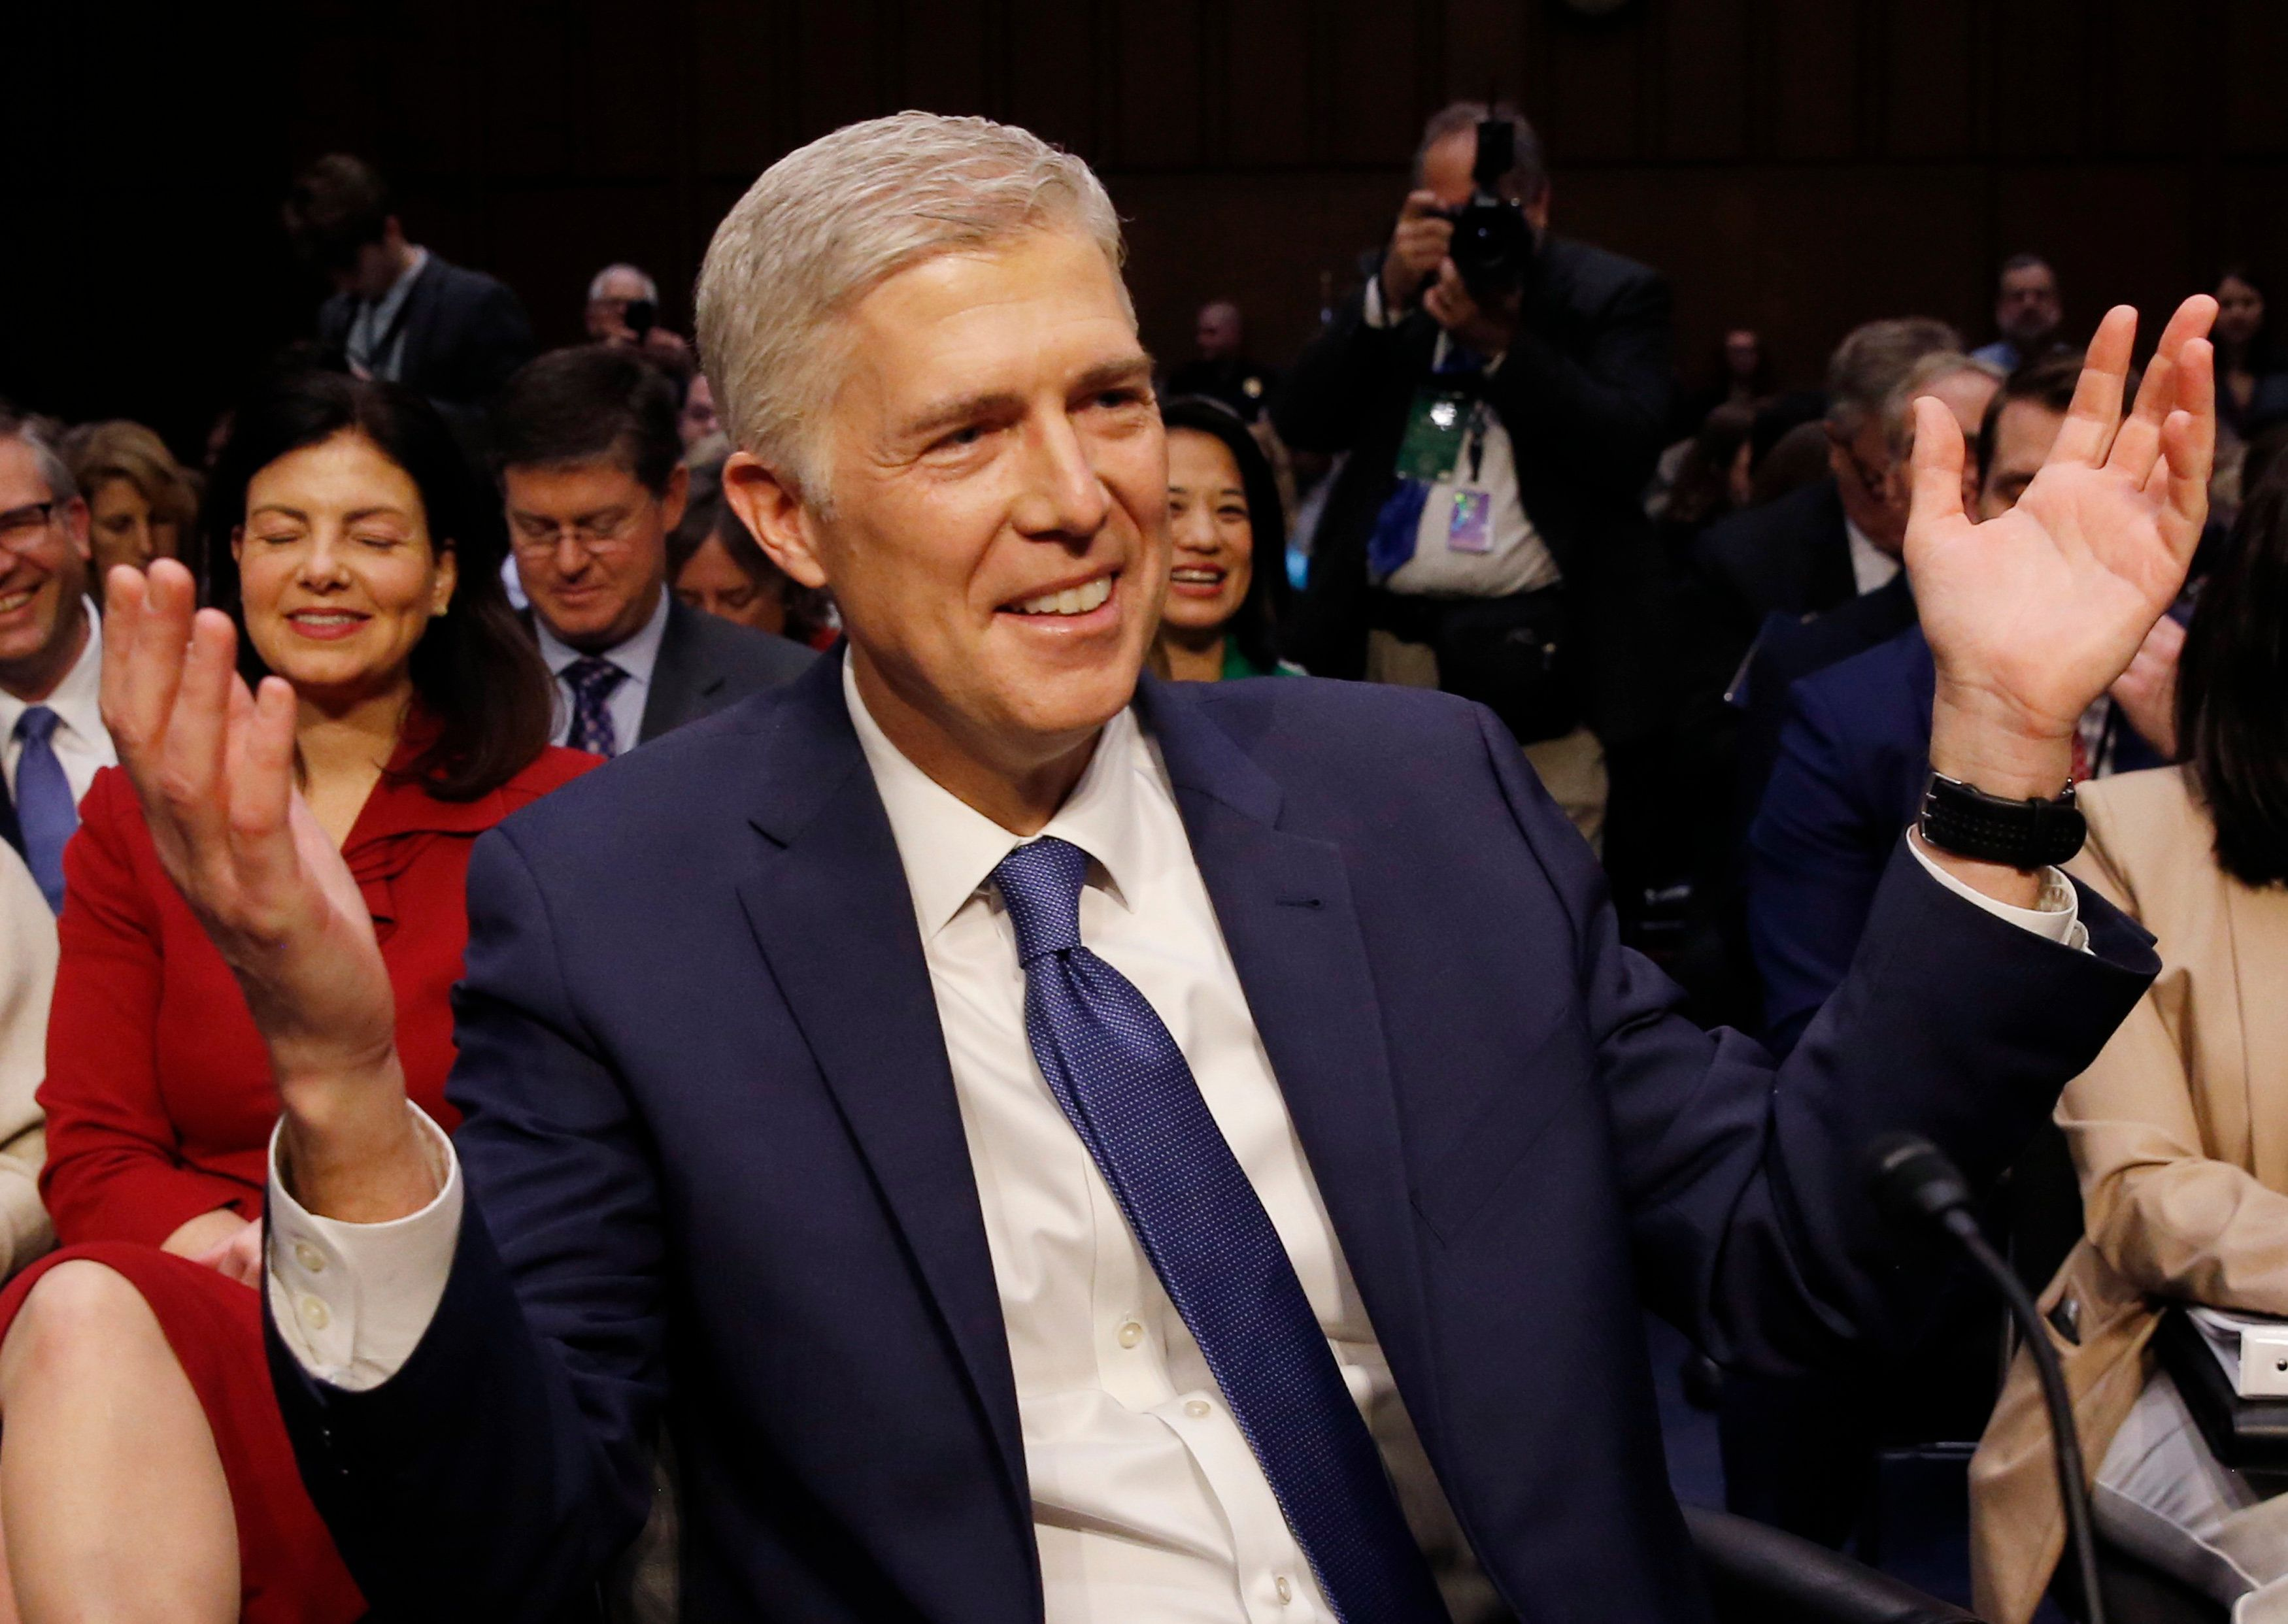 Maybe someone should ask Neil Gorsuch about this before he's confirmed as a Supreme Court justice?